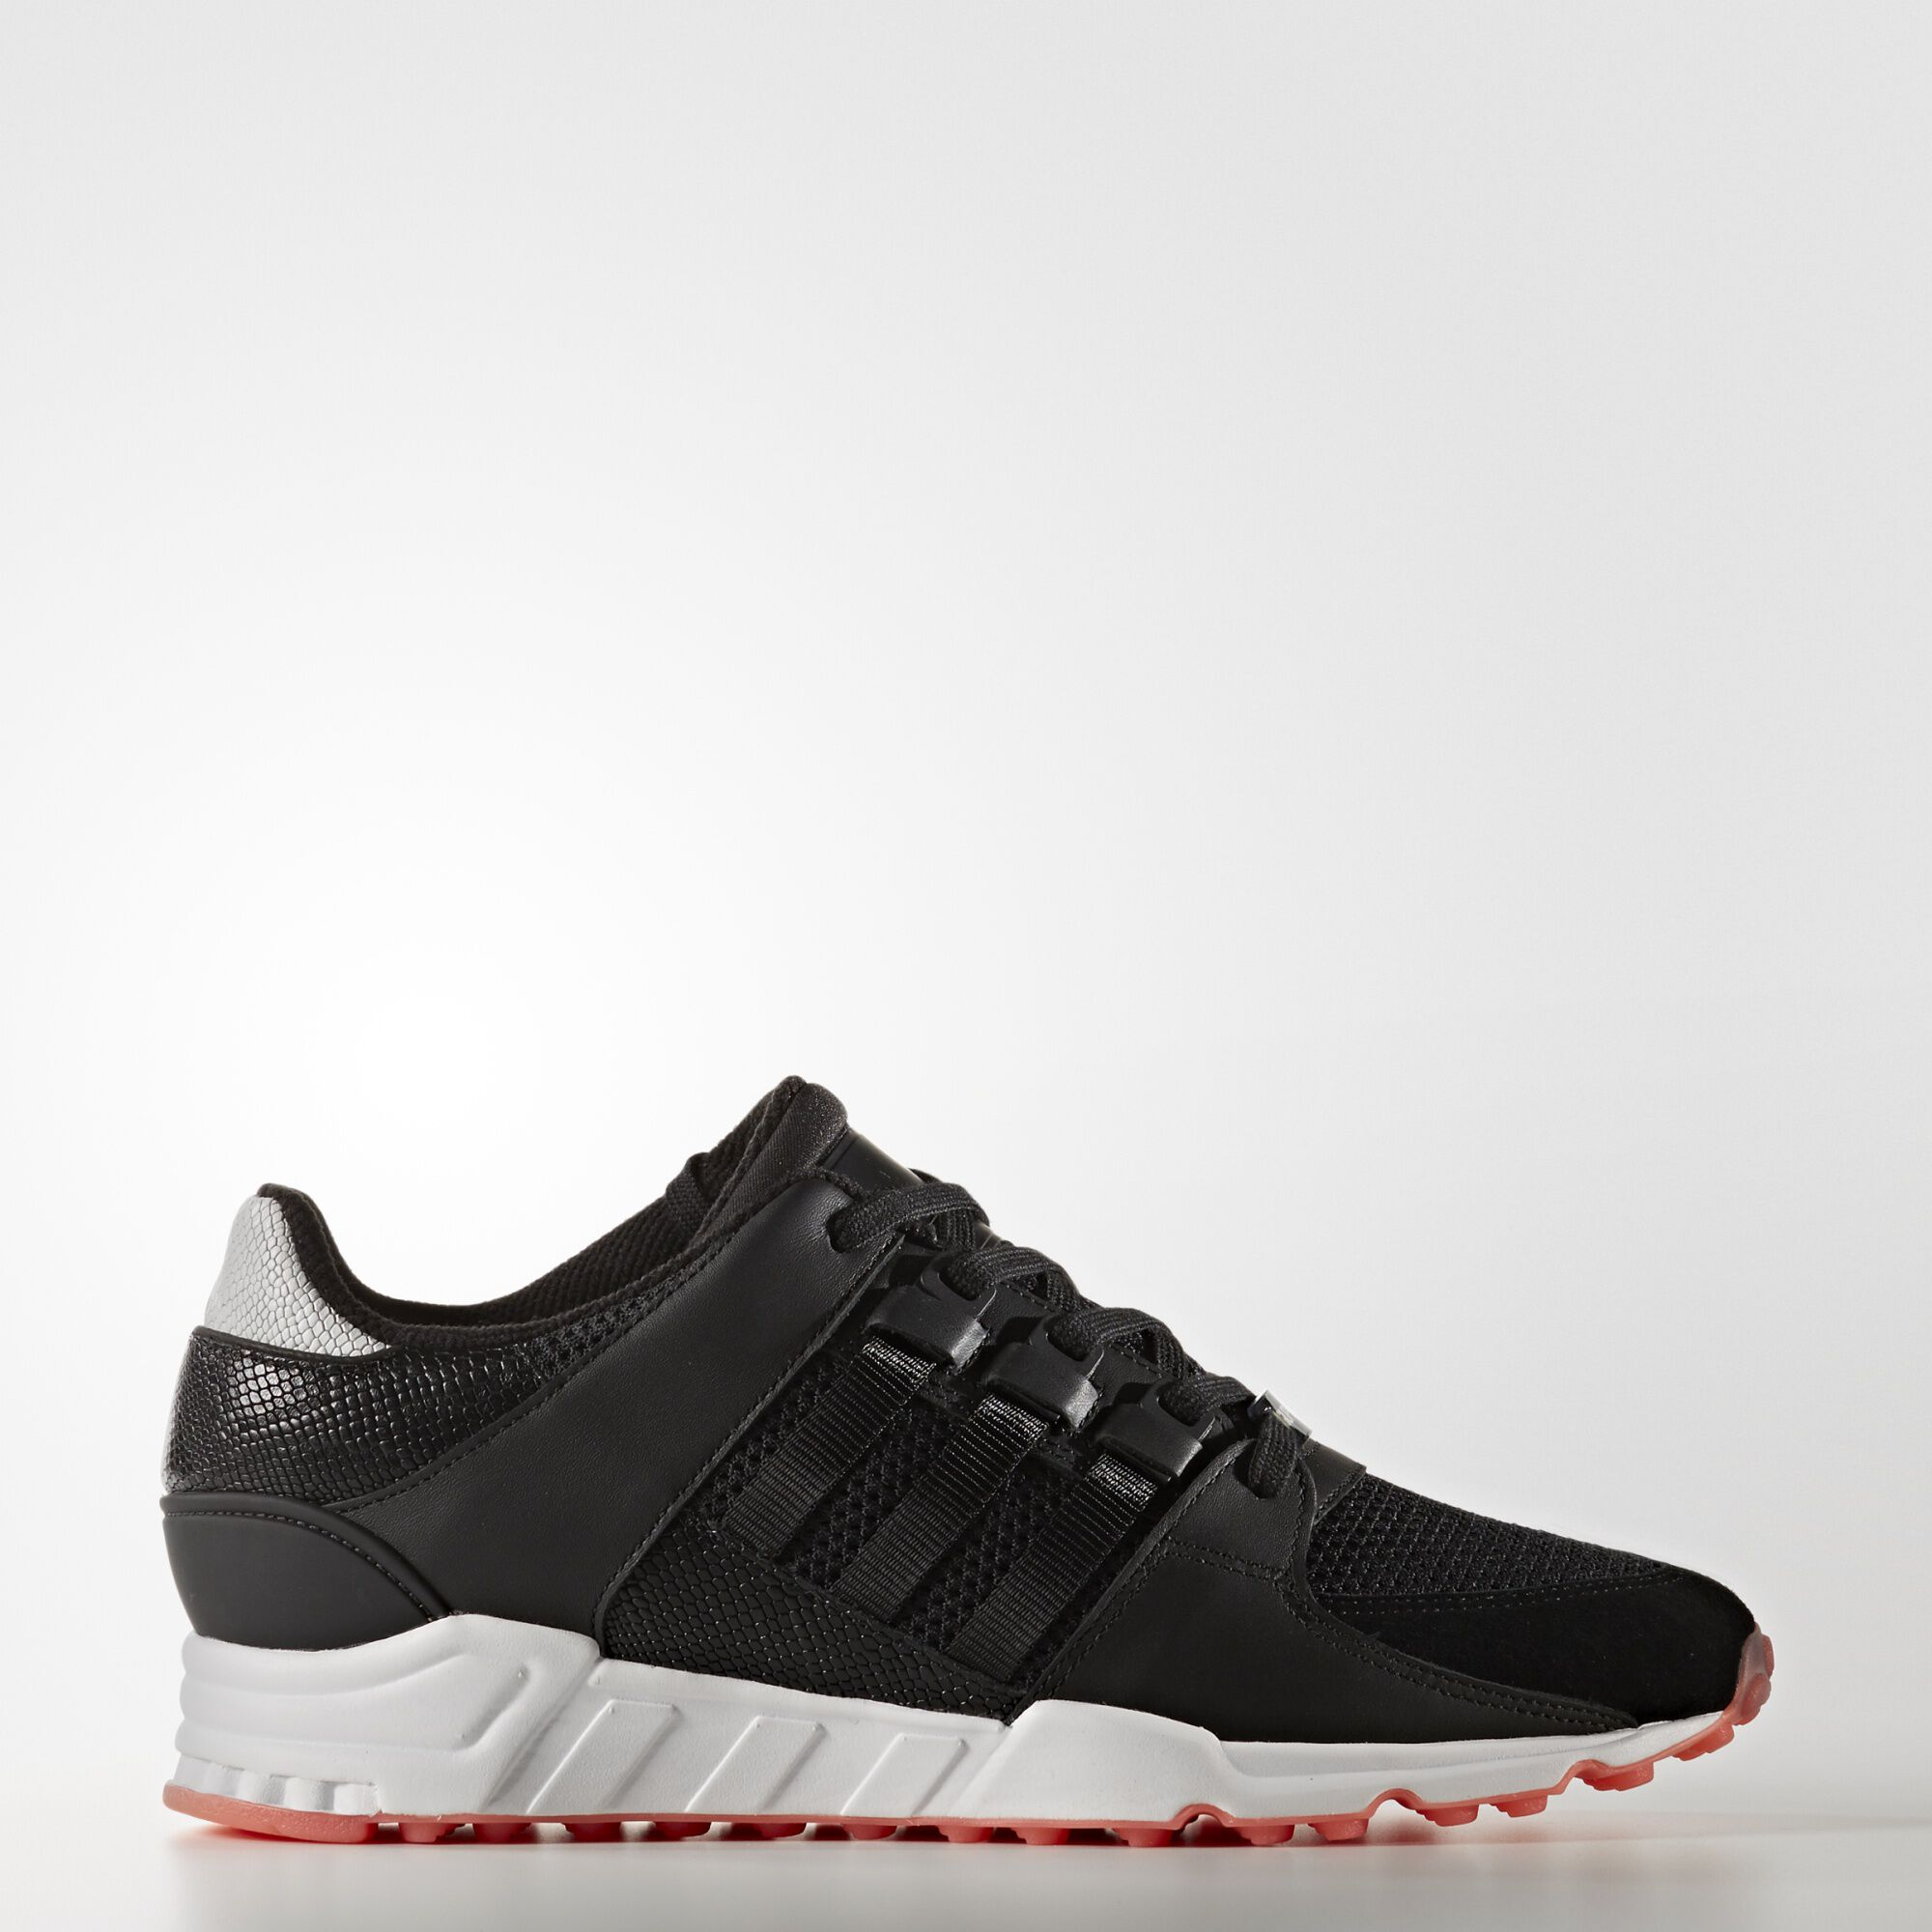 adidas EQT Support ADV (Core Black White) Ubiq